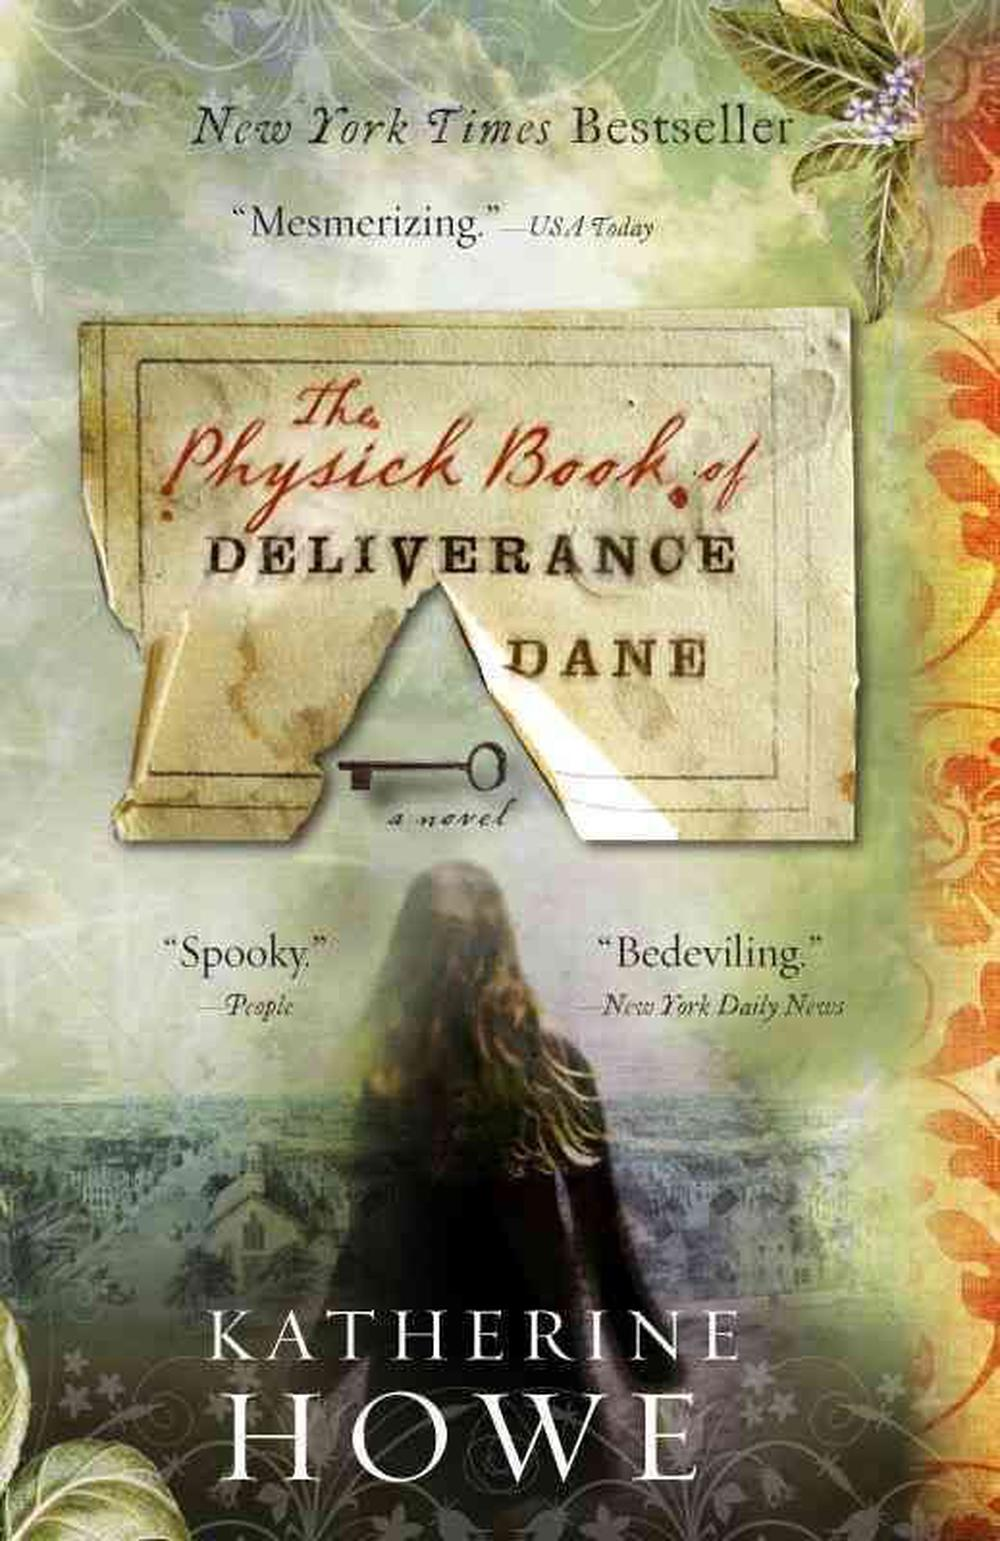 a review of the physick book of deliverance dane written by katherine howe Katherine howe biography: katherine howe is the new york times bestselling author of the physick book of deliverance dane, the house of velvet and.